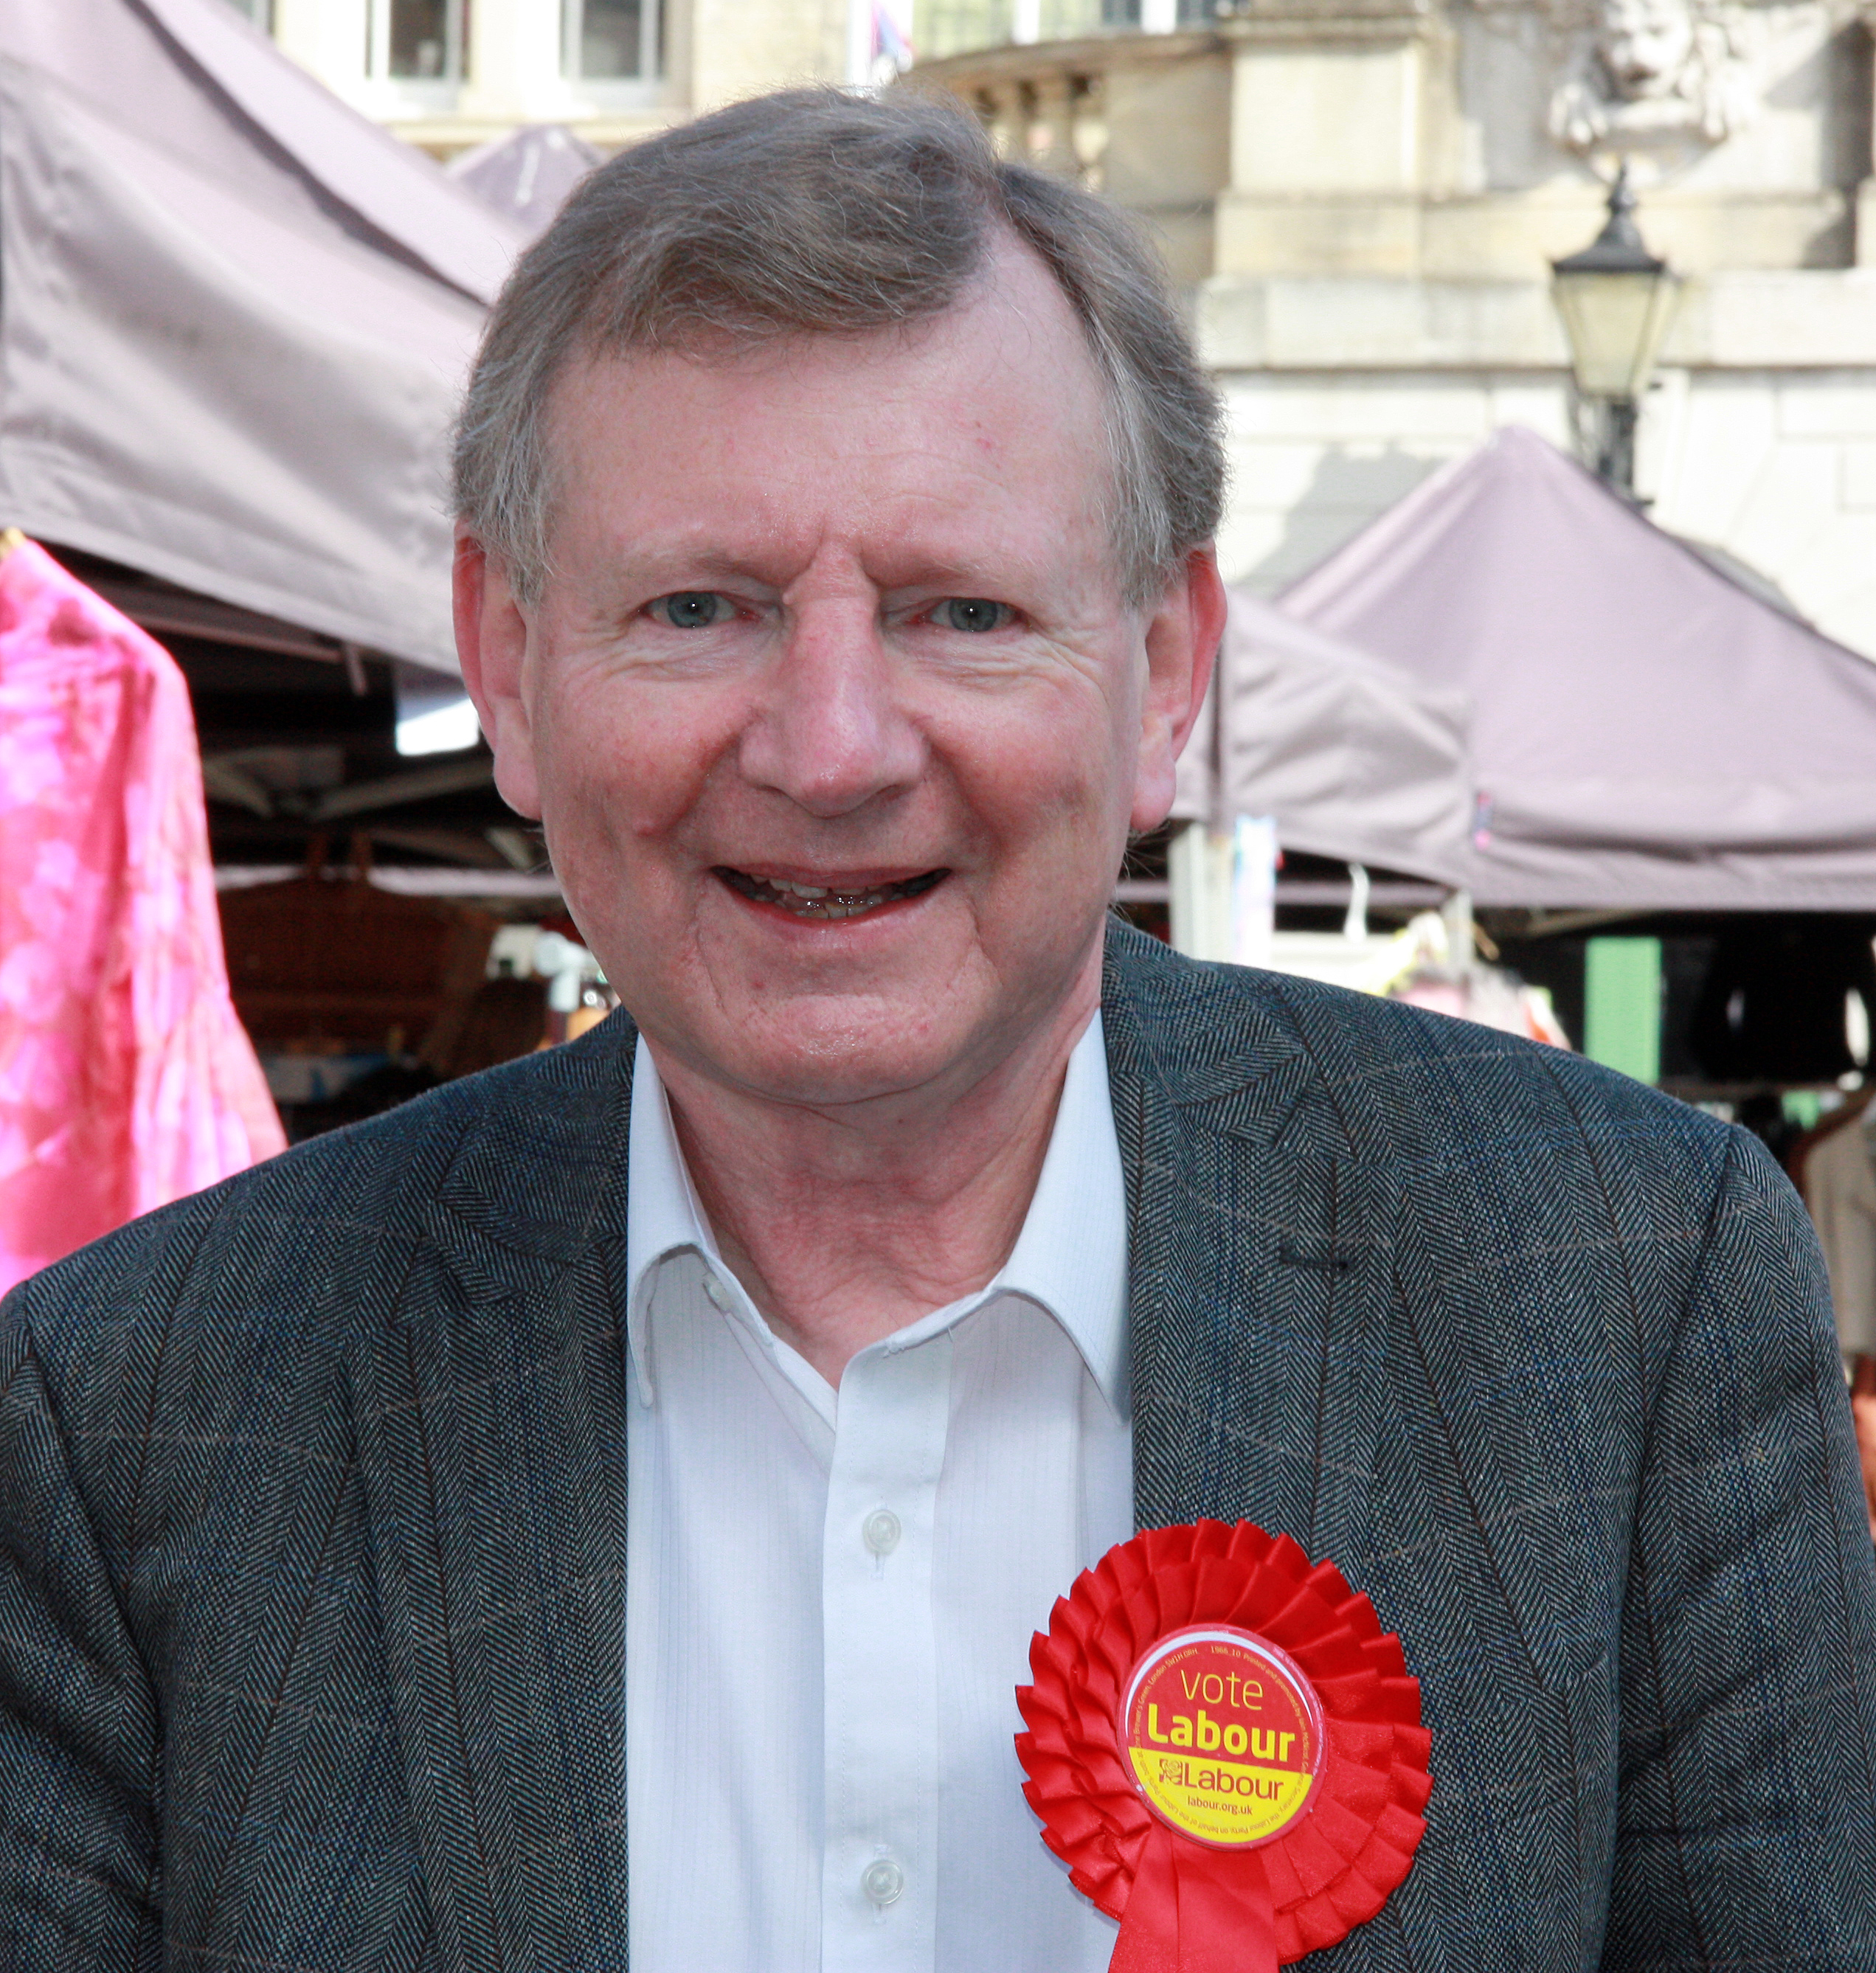 Laurie_South_Labour_rosette.jpg